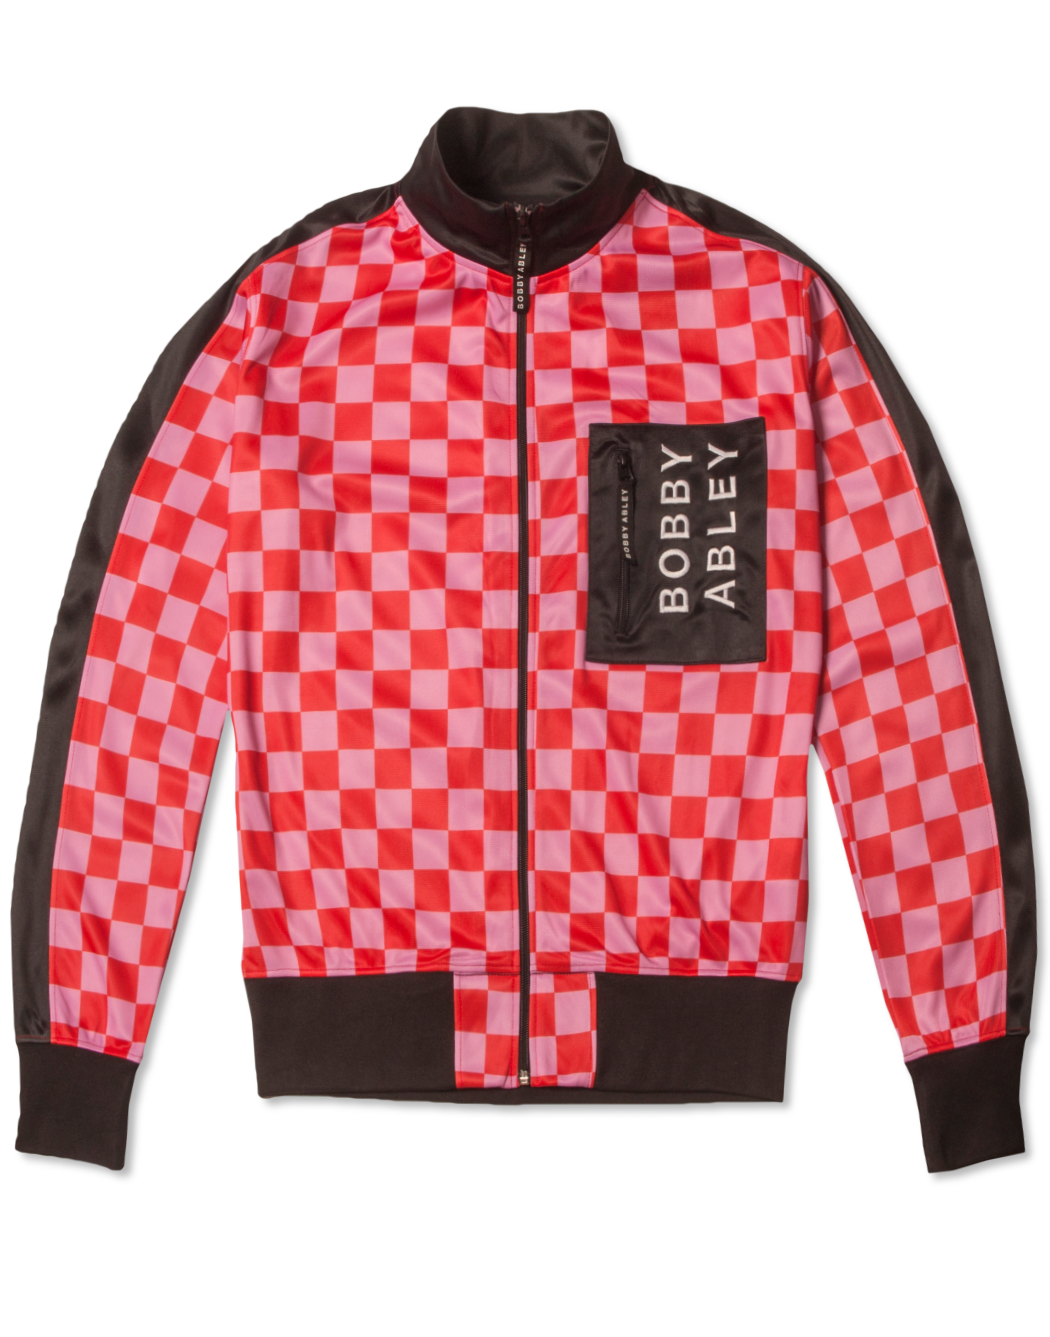 BOBBY MERCH - PINK CHECK TRACK JACKET